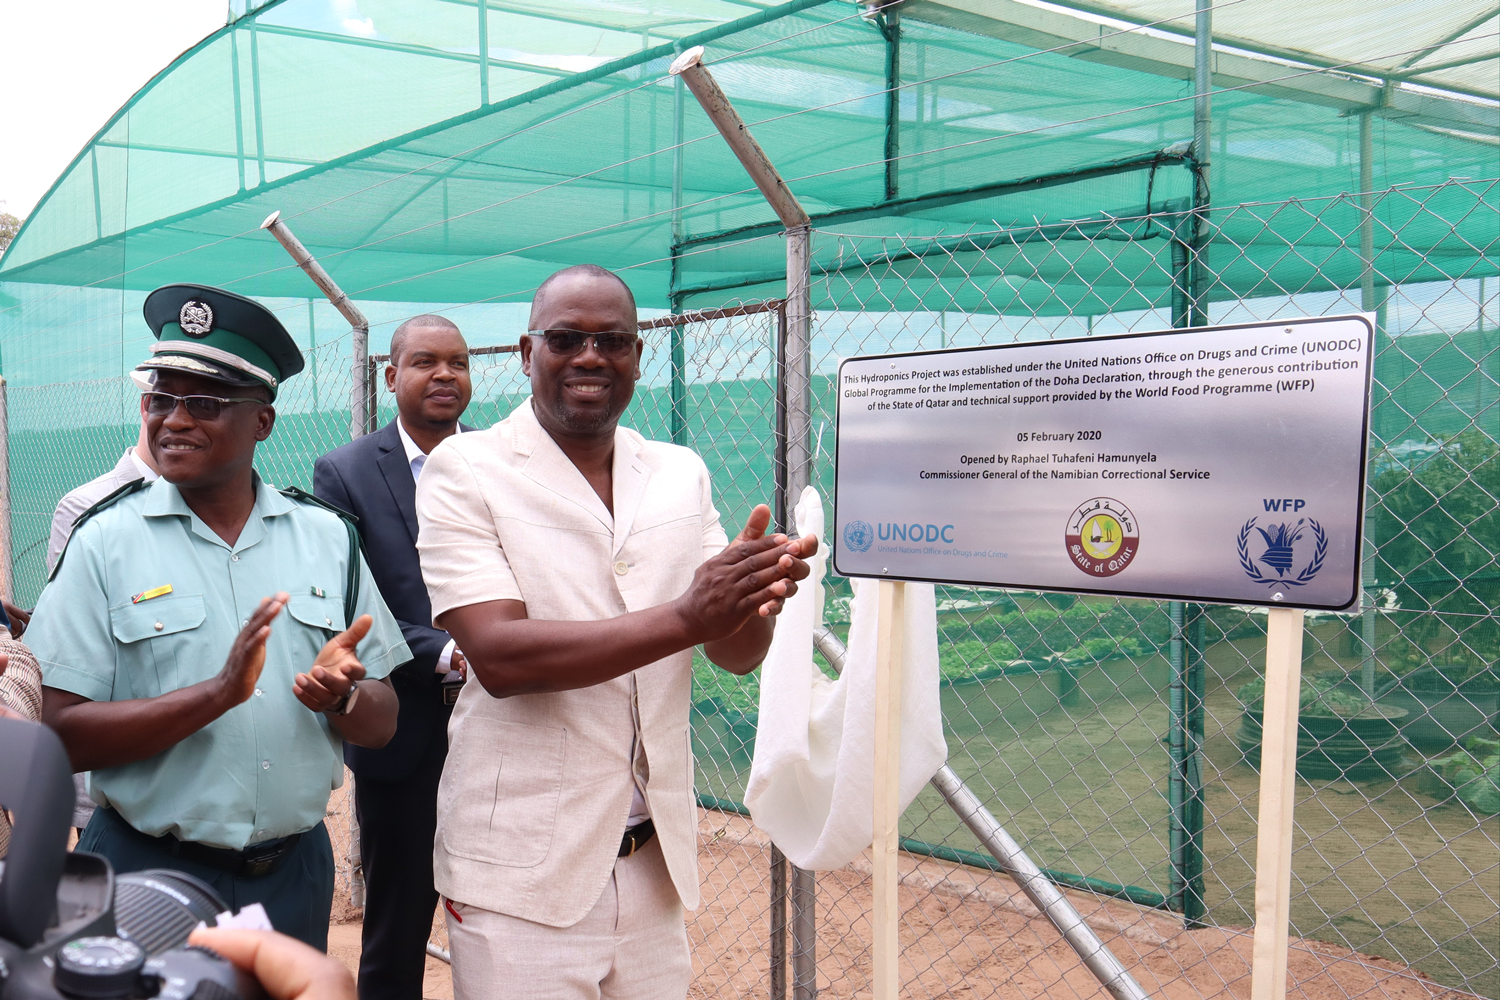 Serving society and the environment, UNODC launches hydroponics and soap production prisoner rehabilitation projects in Namibia